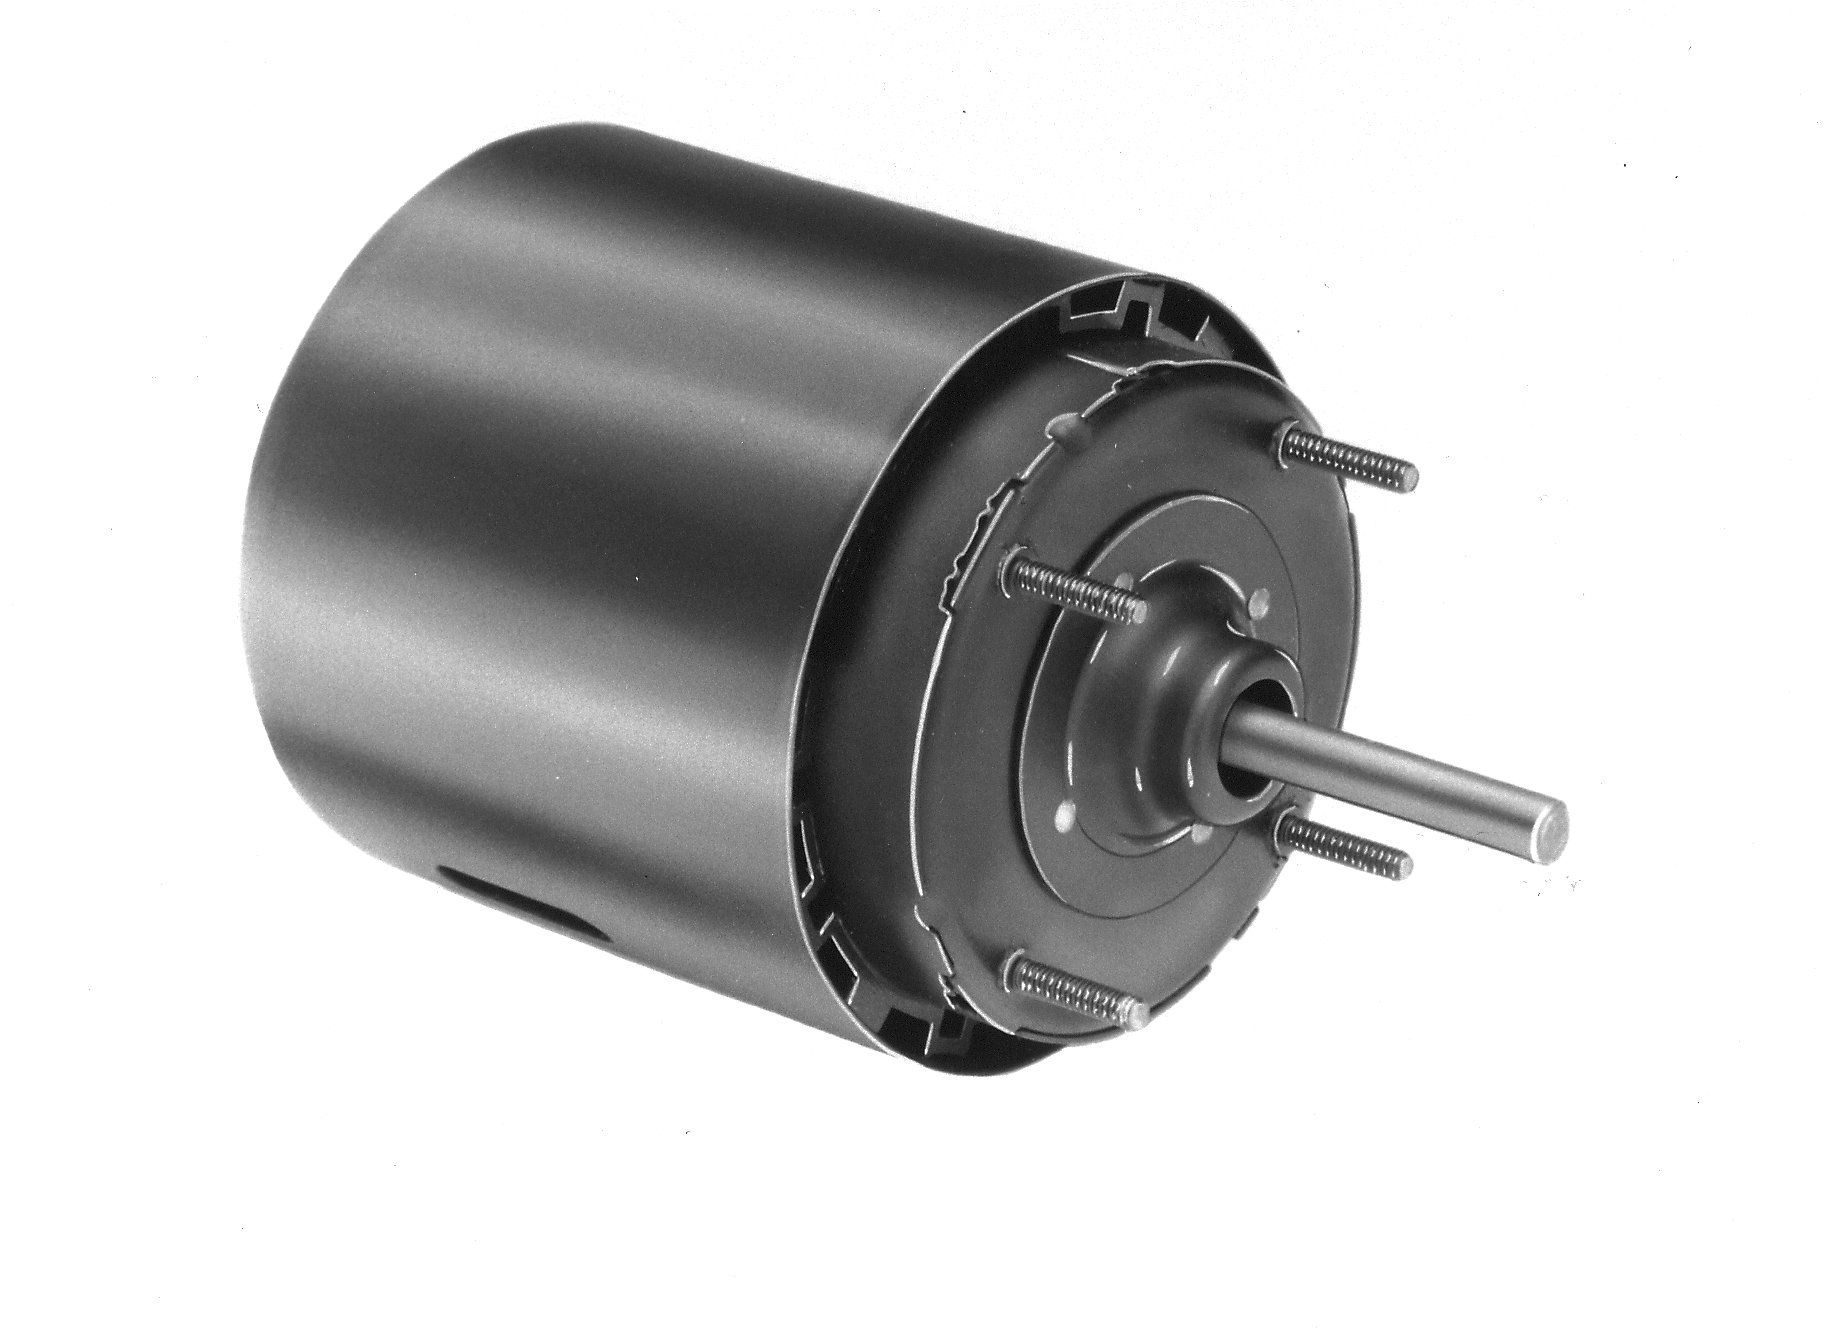 Fasco D334 3.3'' Frame Totally Enclosed Shaded Pole Self Cooled Motor with Ball Bearing, 1/15HP, 1500rpm, 230V, 60Hz, 1.4 amps